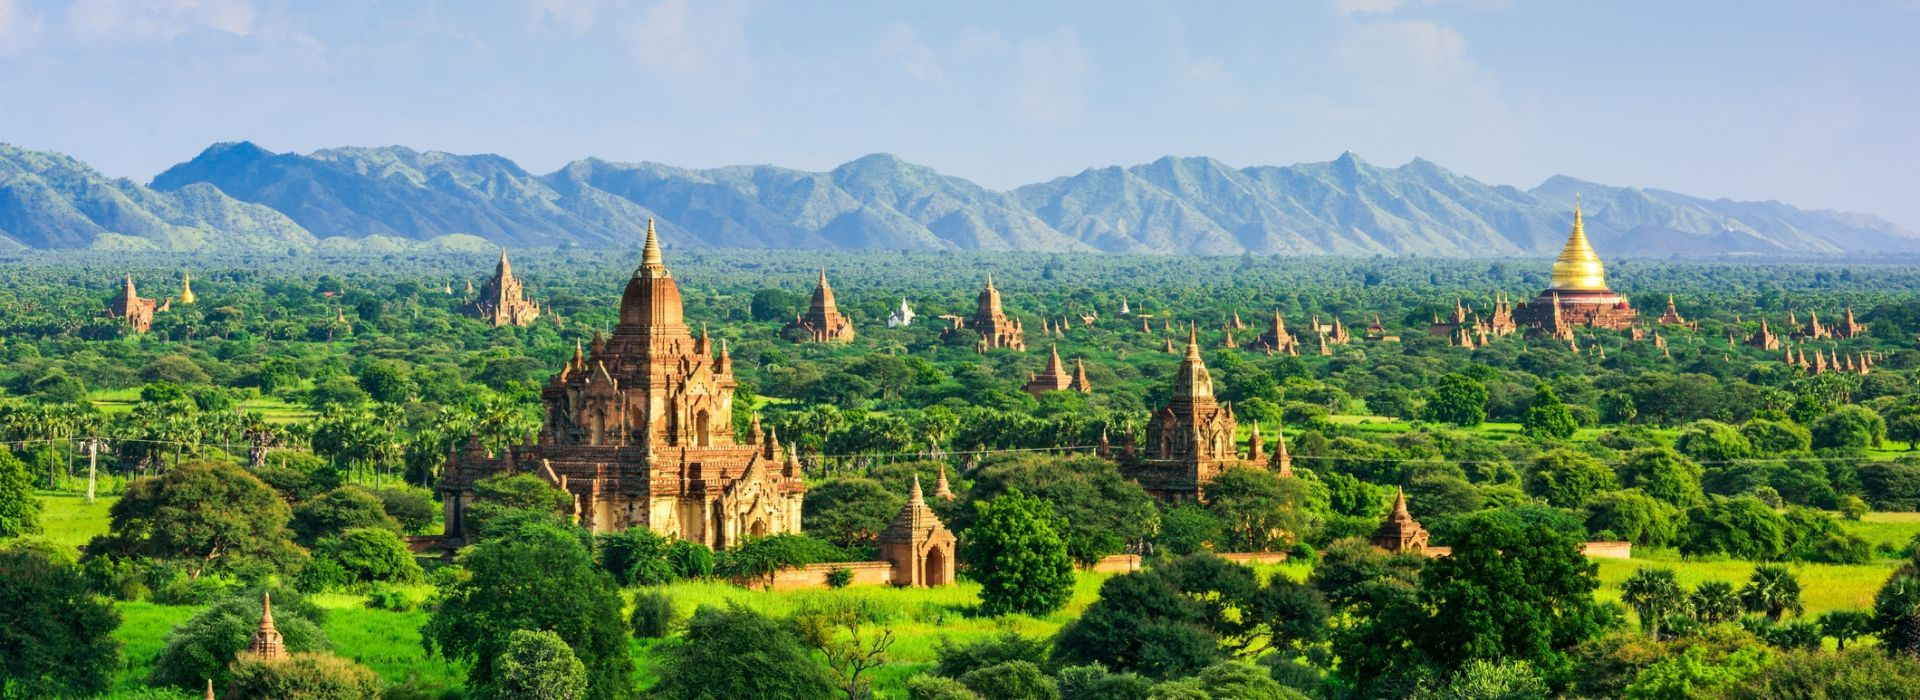 Cultural, religious and historic sites Tours in Yangon